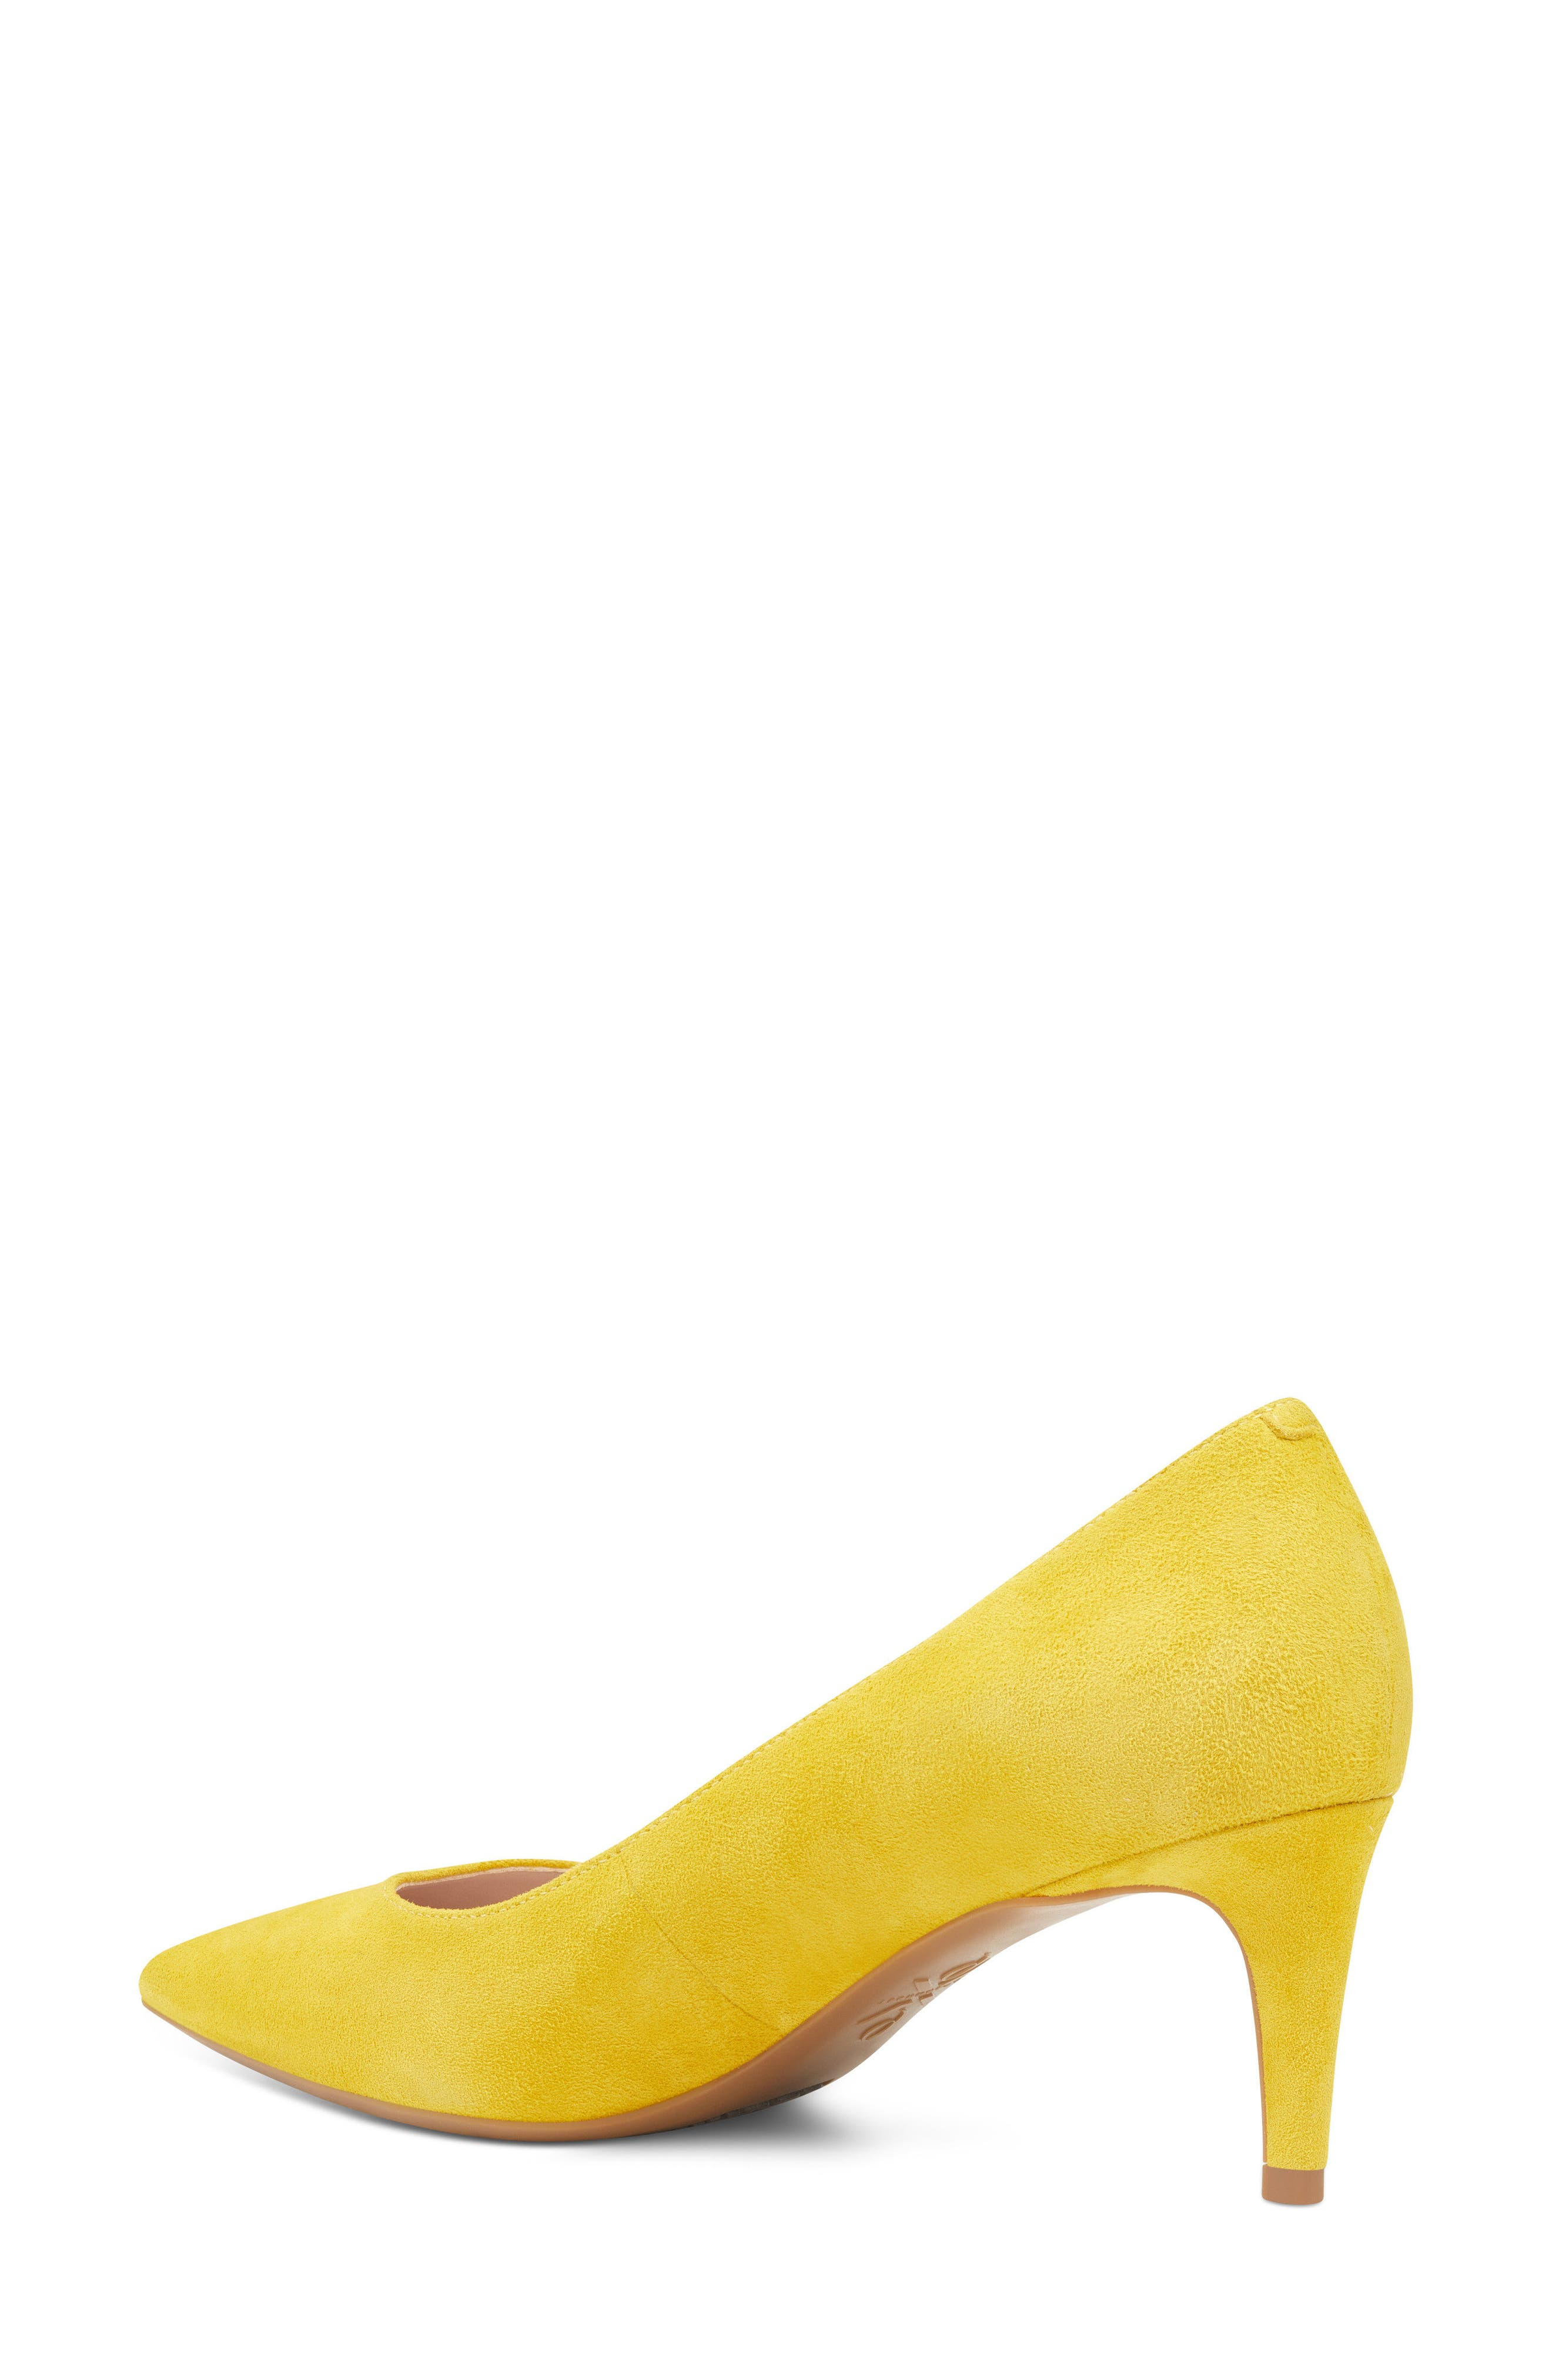 Soho Pointy Toe Pump,                             Alternate thumbnail 13, color,